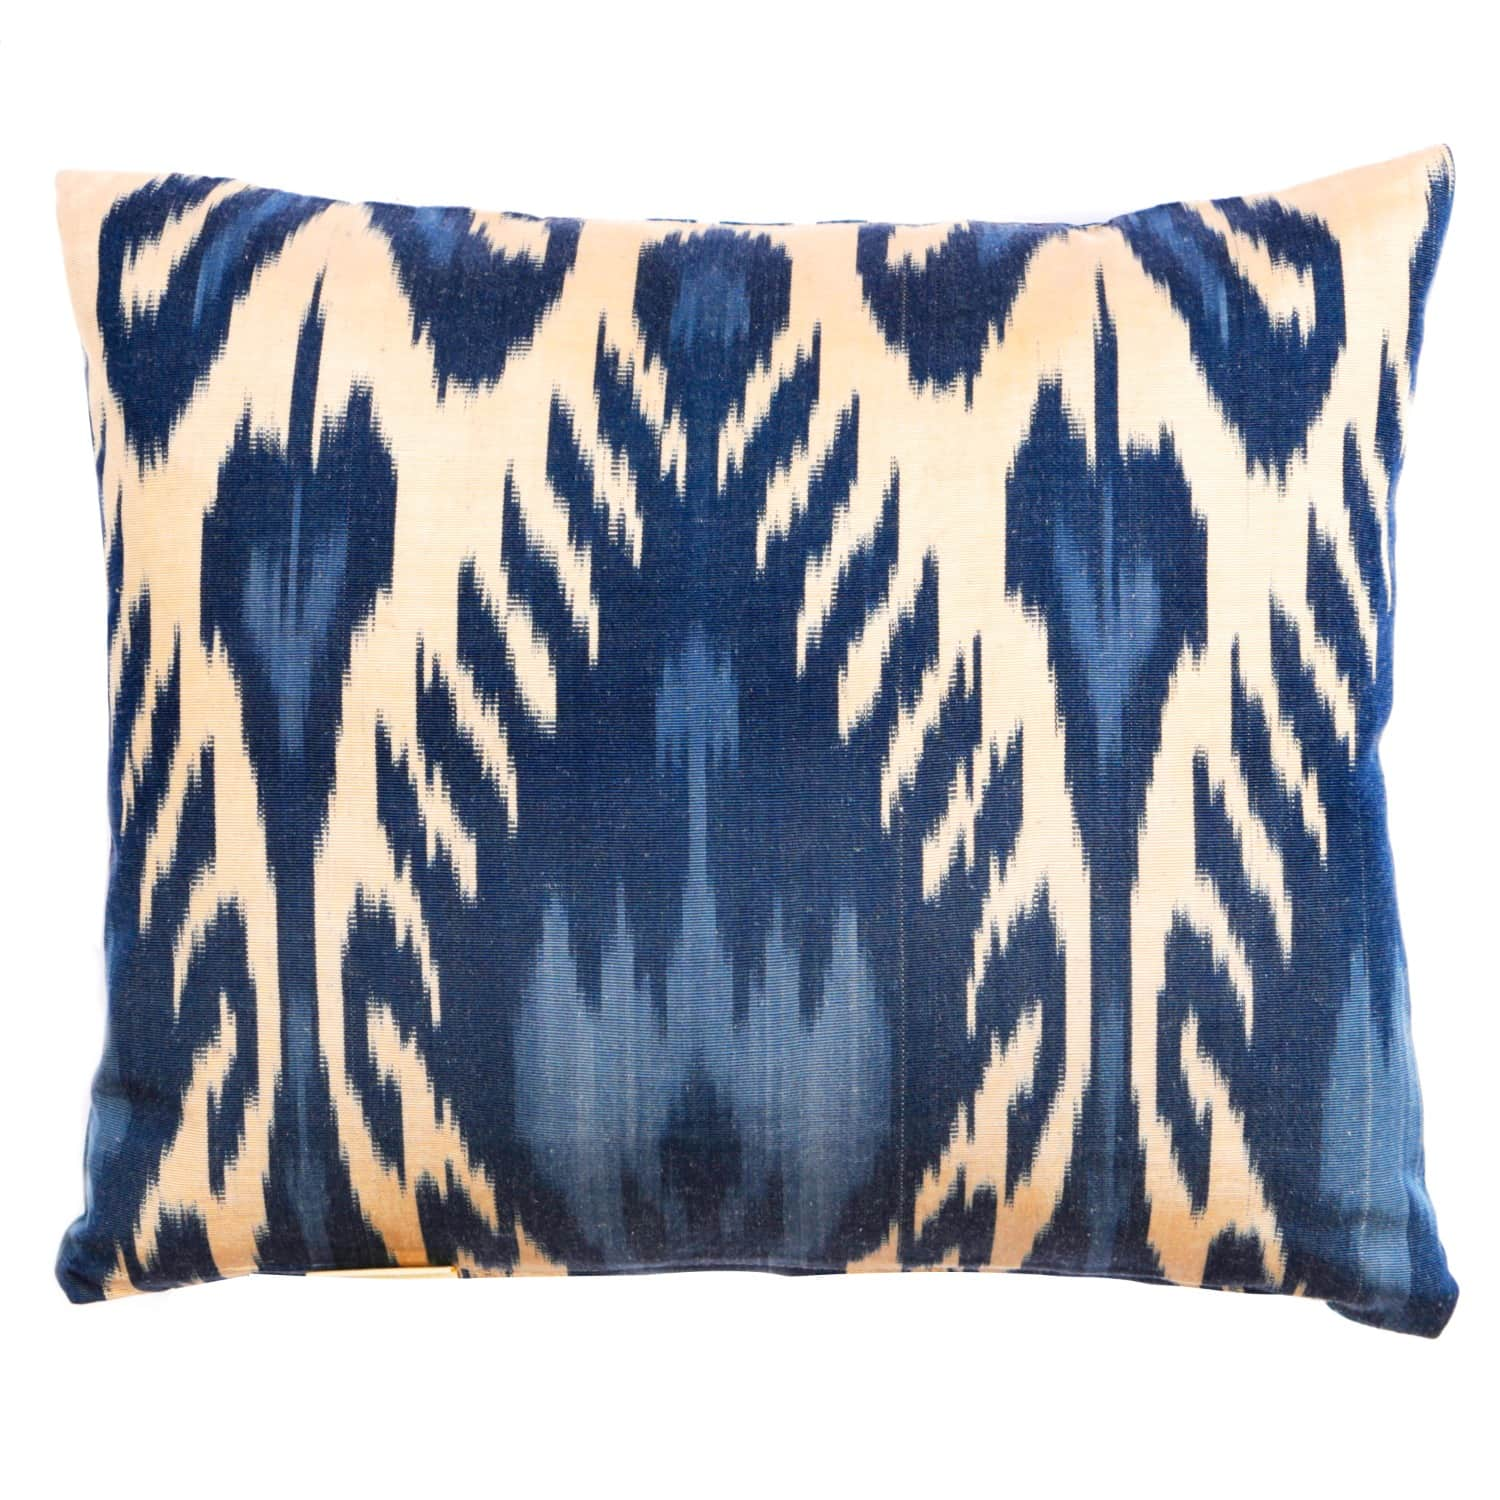 blue dreams handcrafted silk ikat cushion by heritage geneve